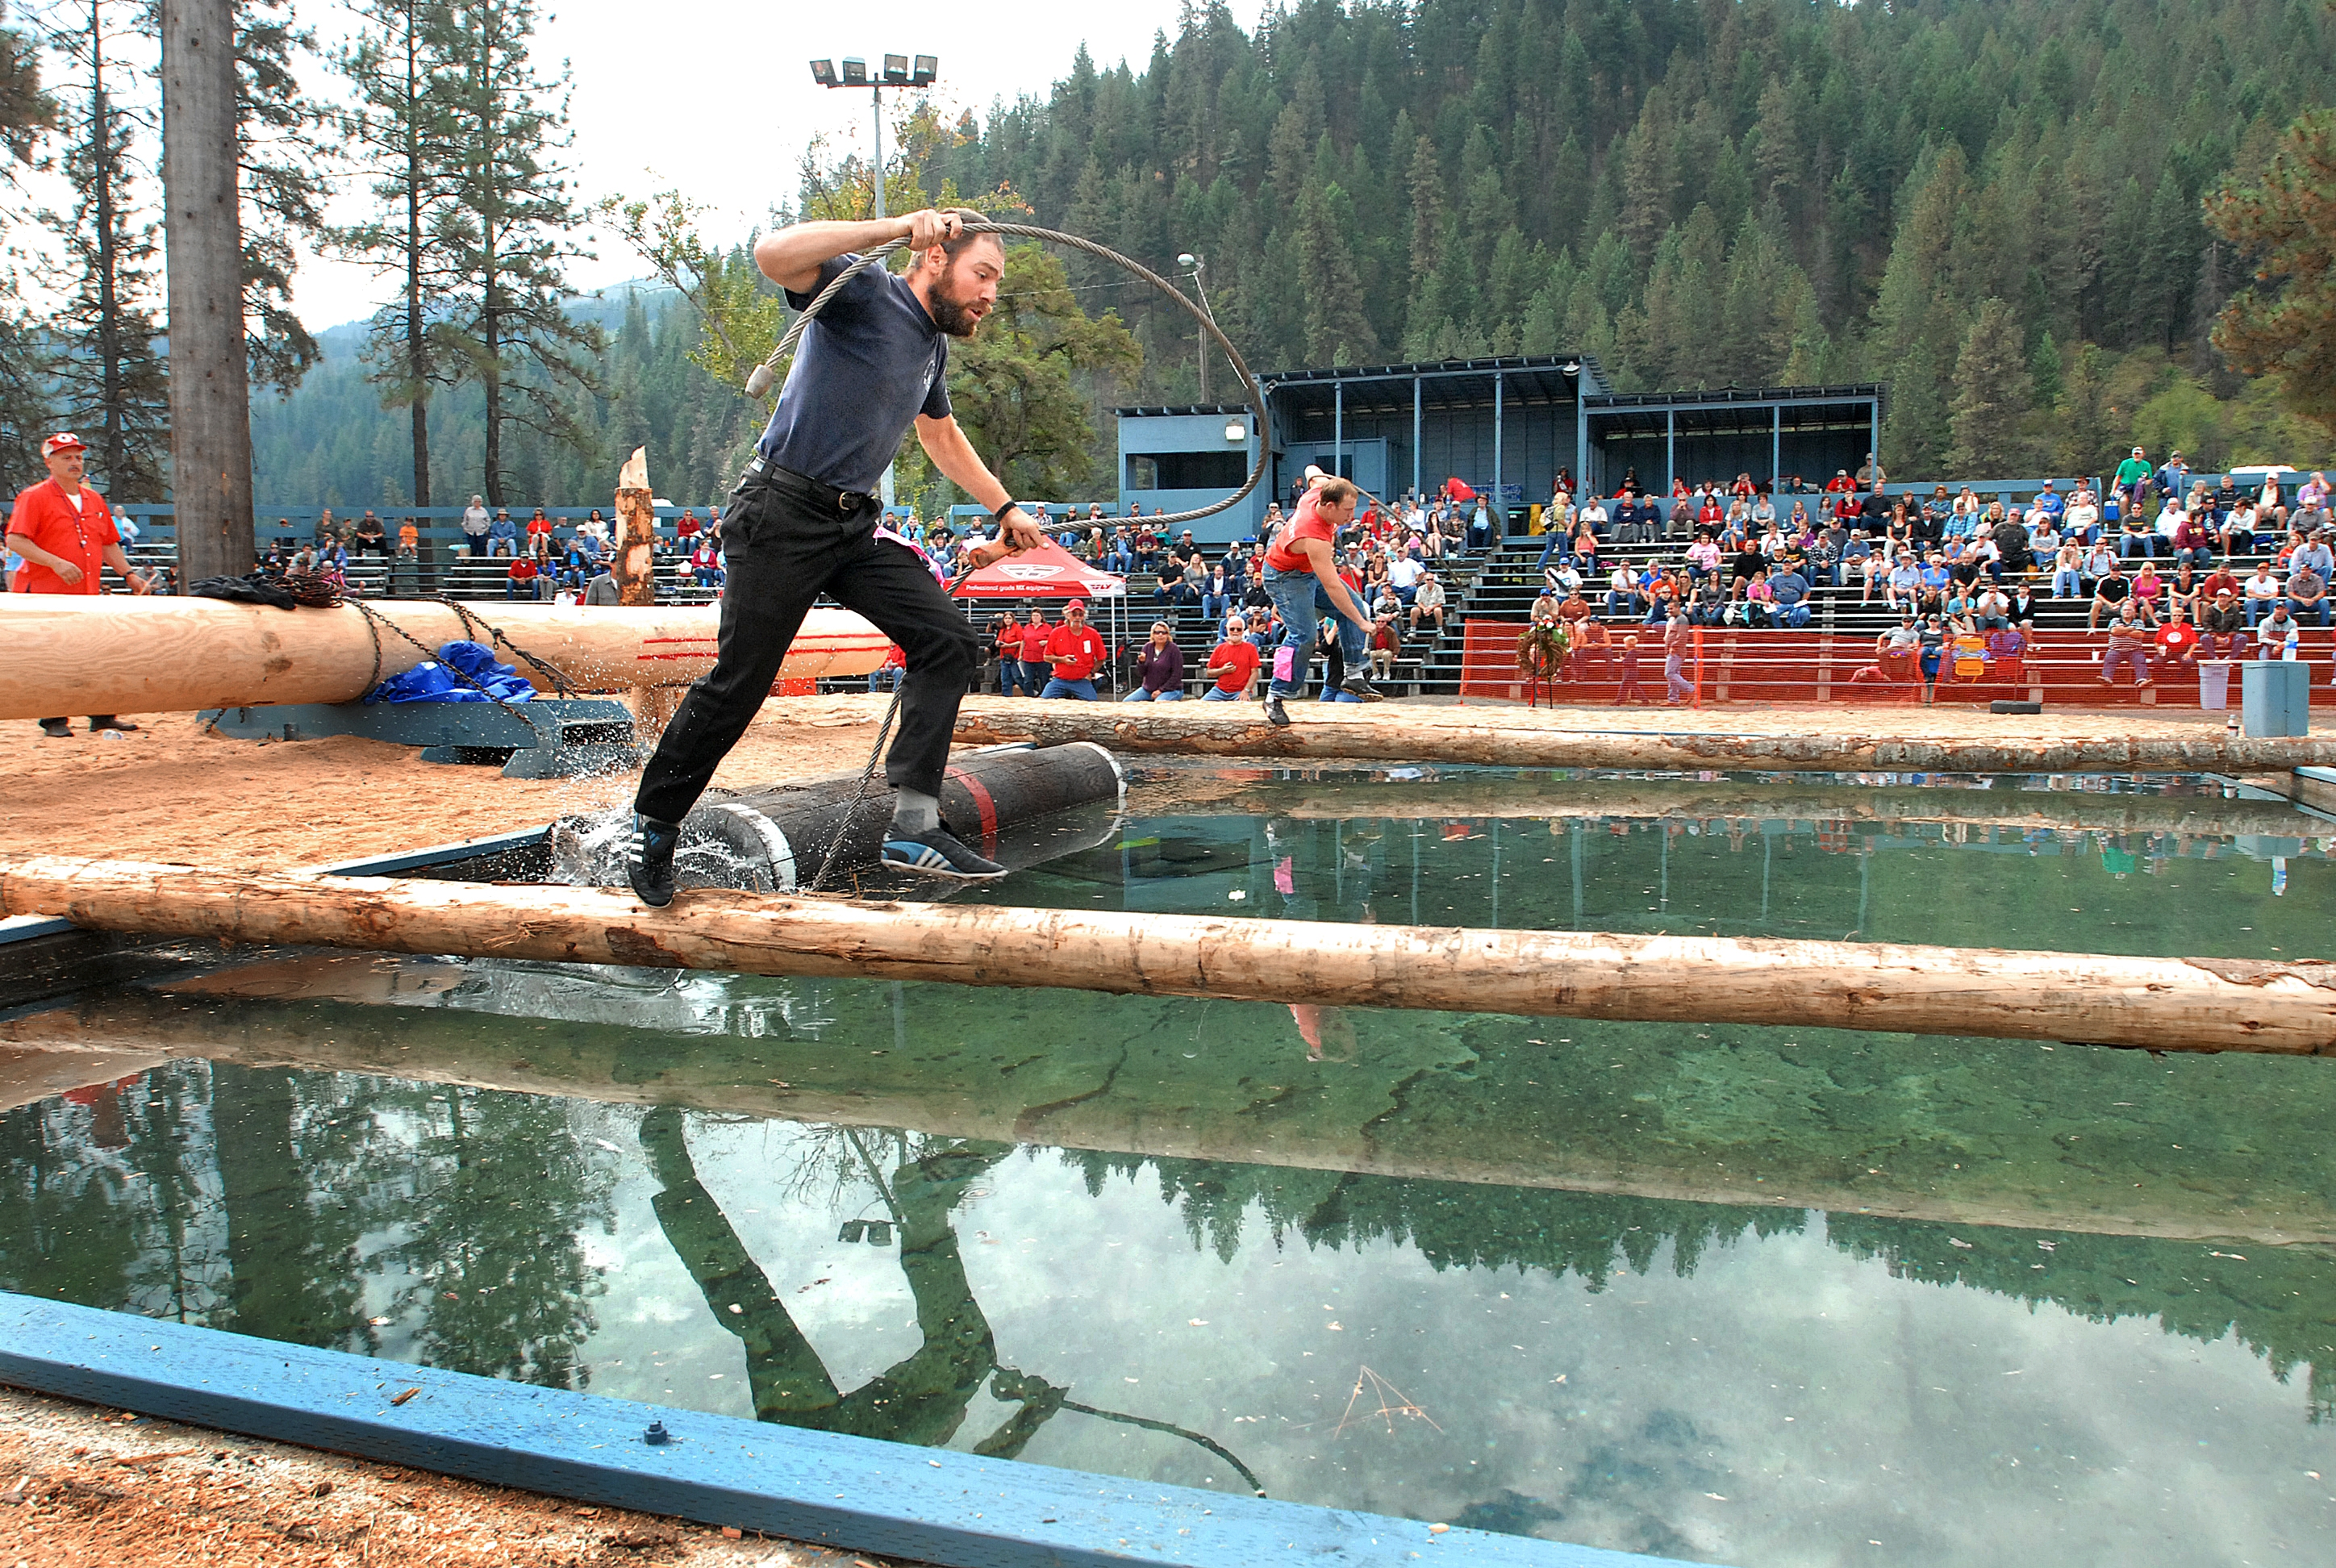 Orofino Lumberjack Days: A festival fit for Paul Bunyon